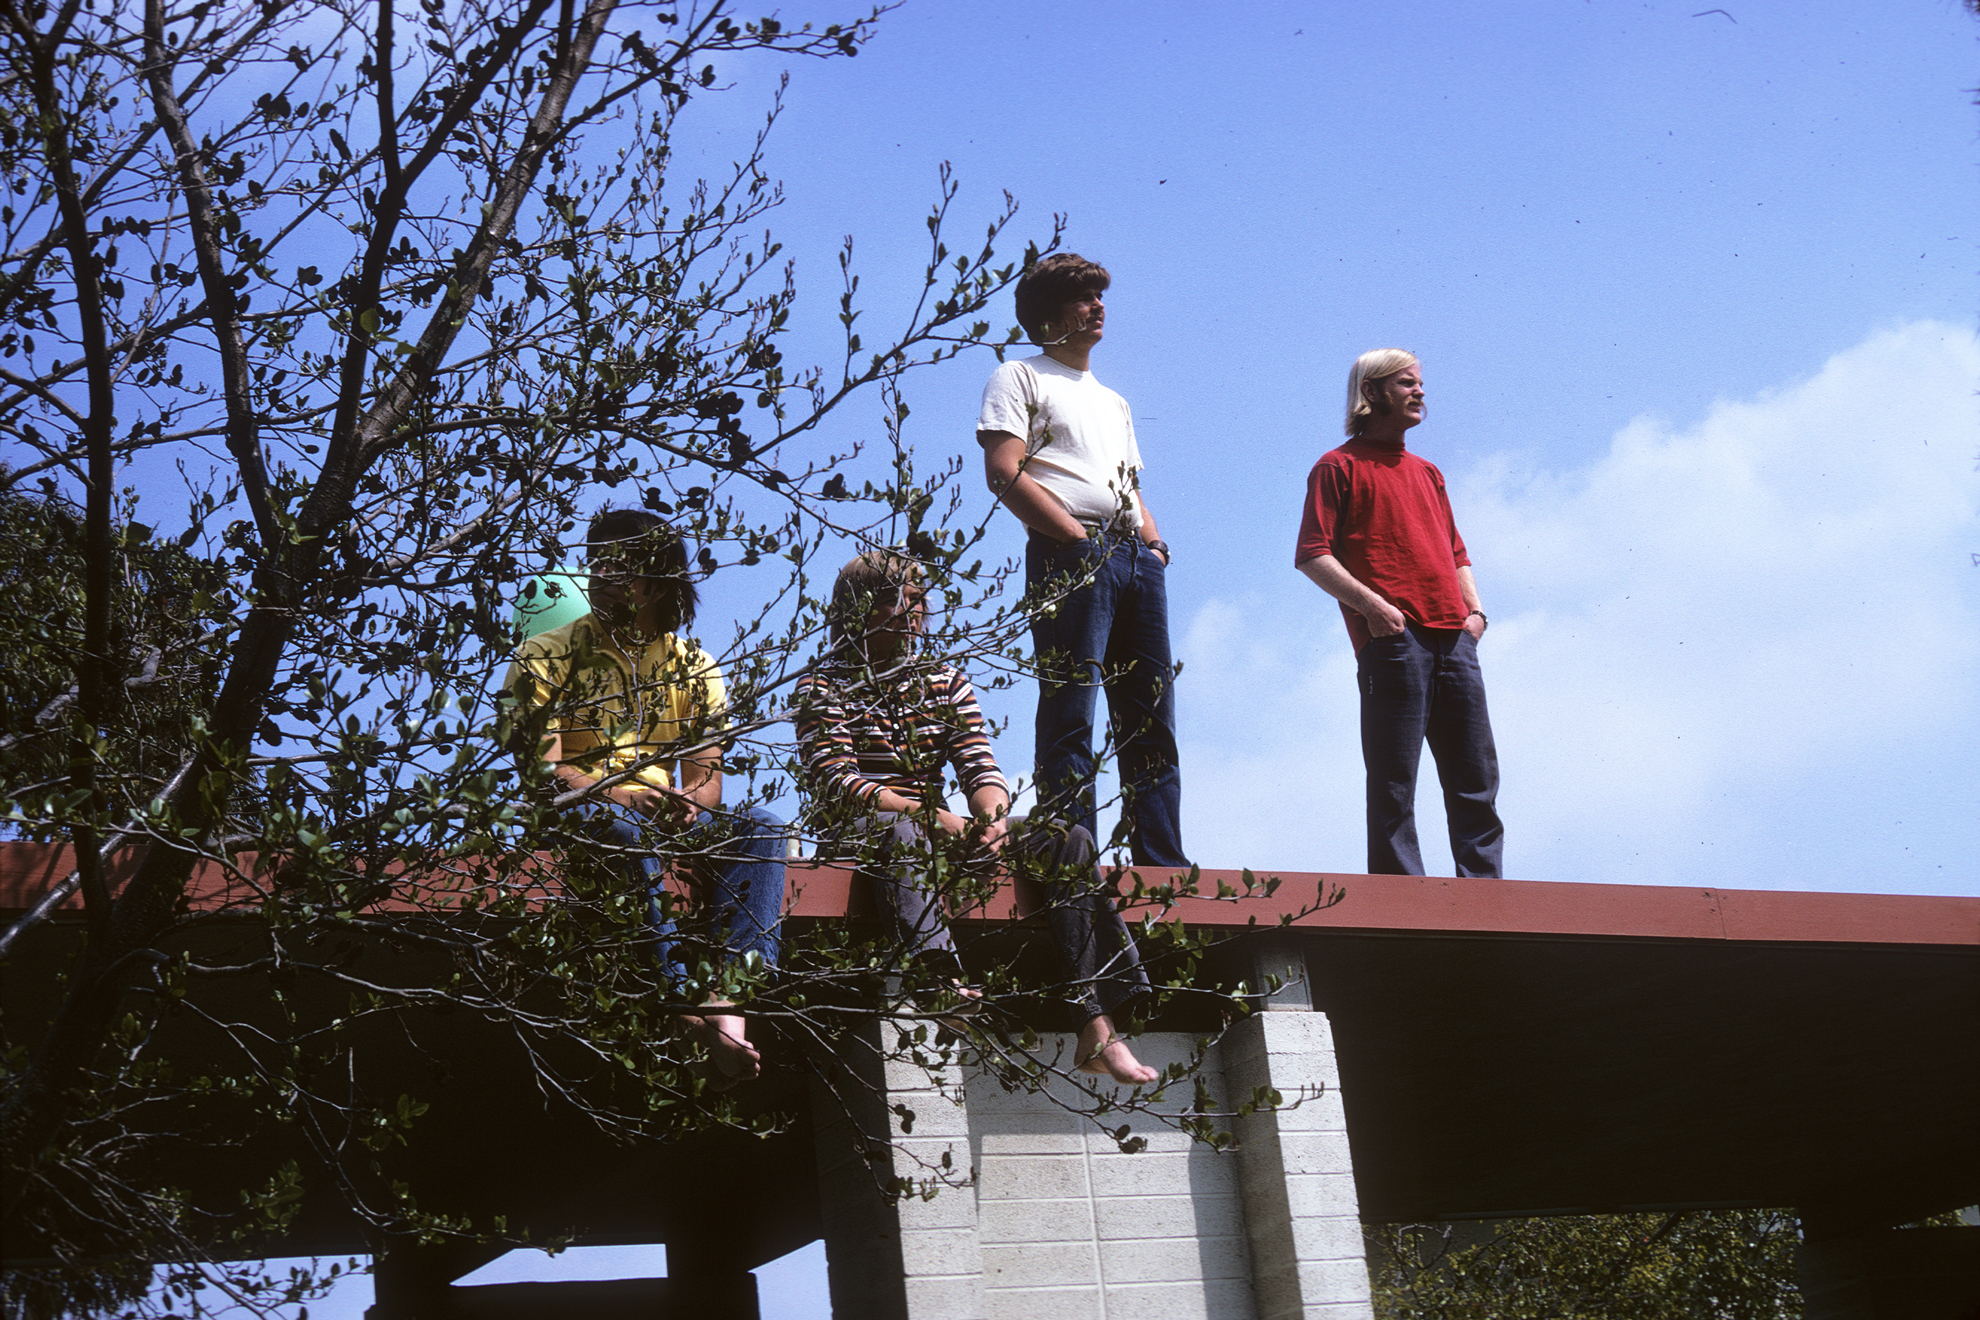 1975 - Watching the Kohoutek festivities from the covered walkway that stretched from McConnell Center to old Sanborn Hall.